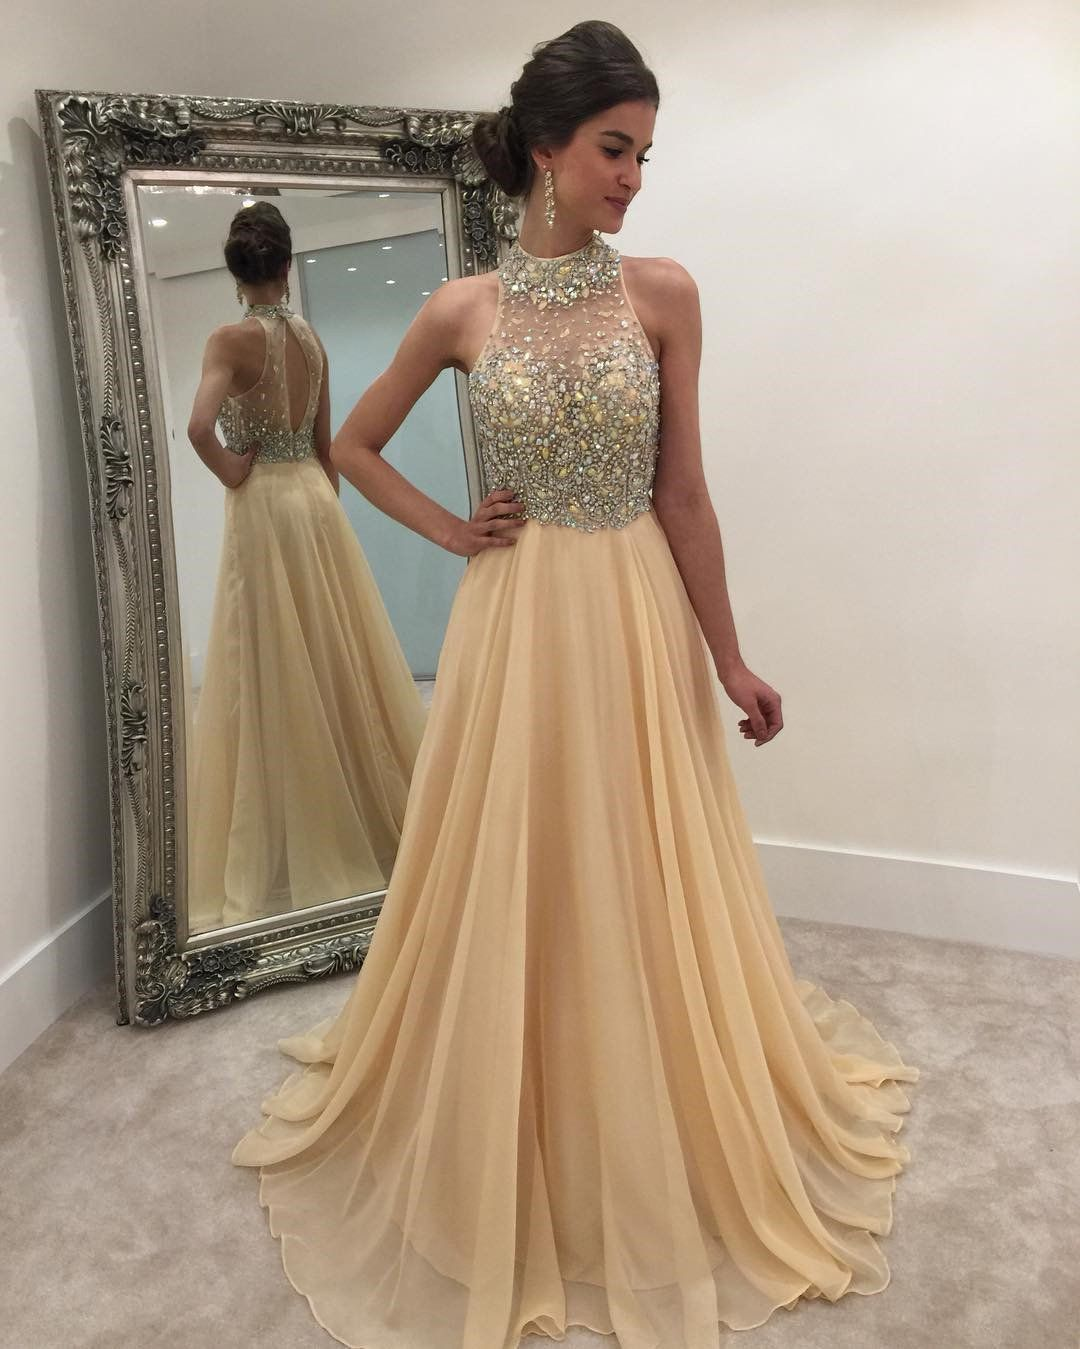 2017 High Neck Rhinestone Open Back Long A Line Prom Dresses Pd0258 Sofitbridal